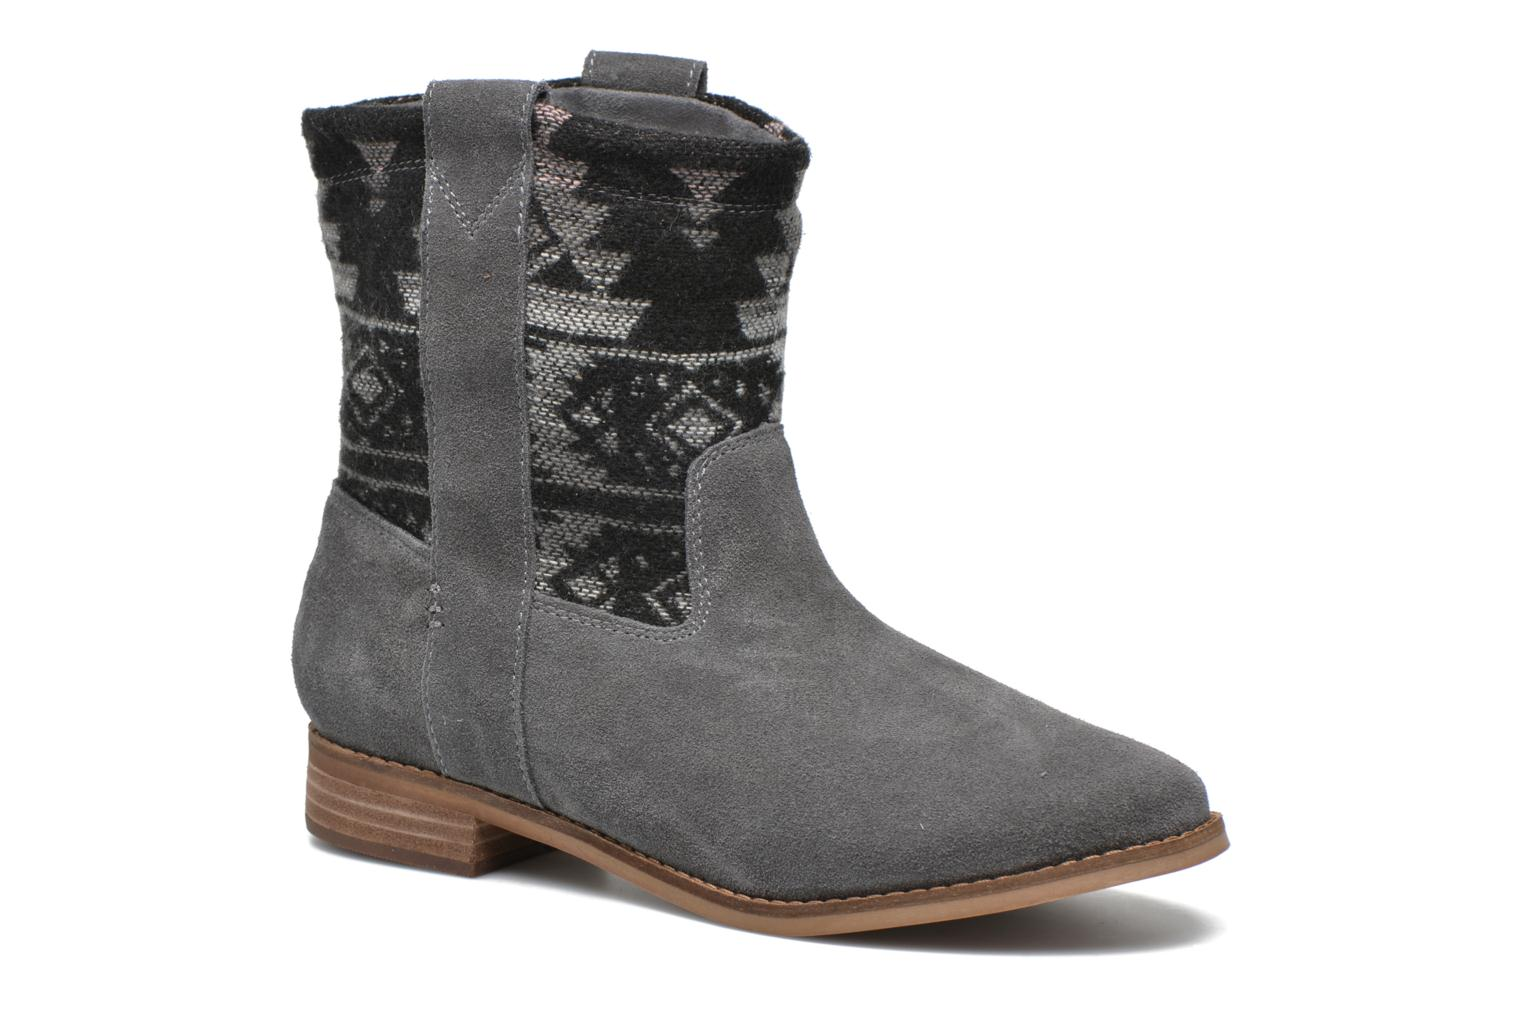 Laurel pull-on boot